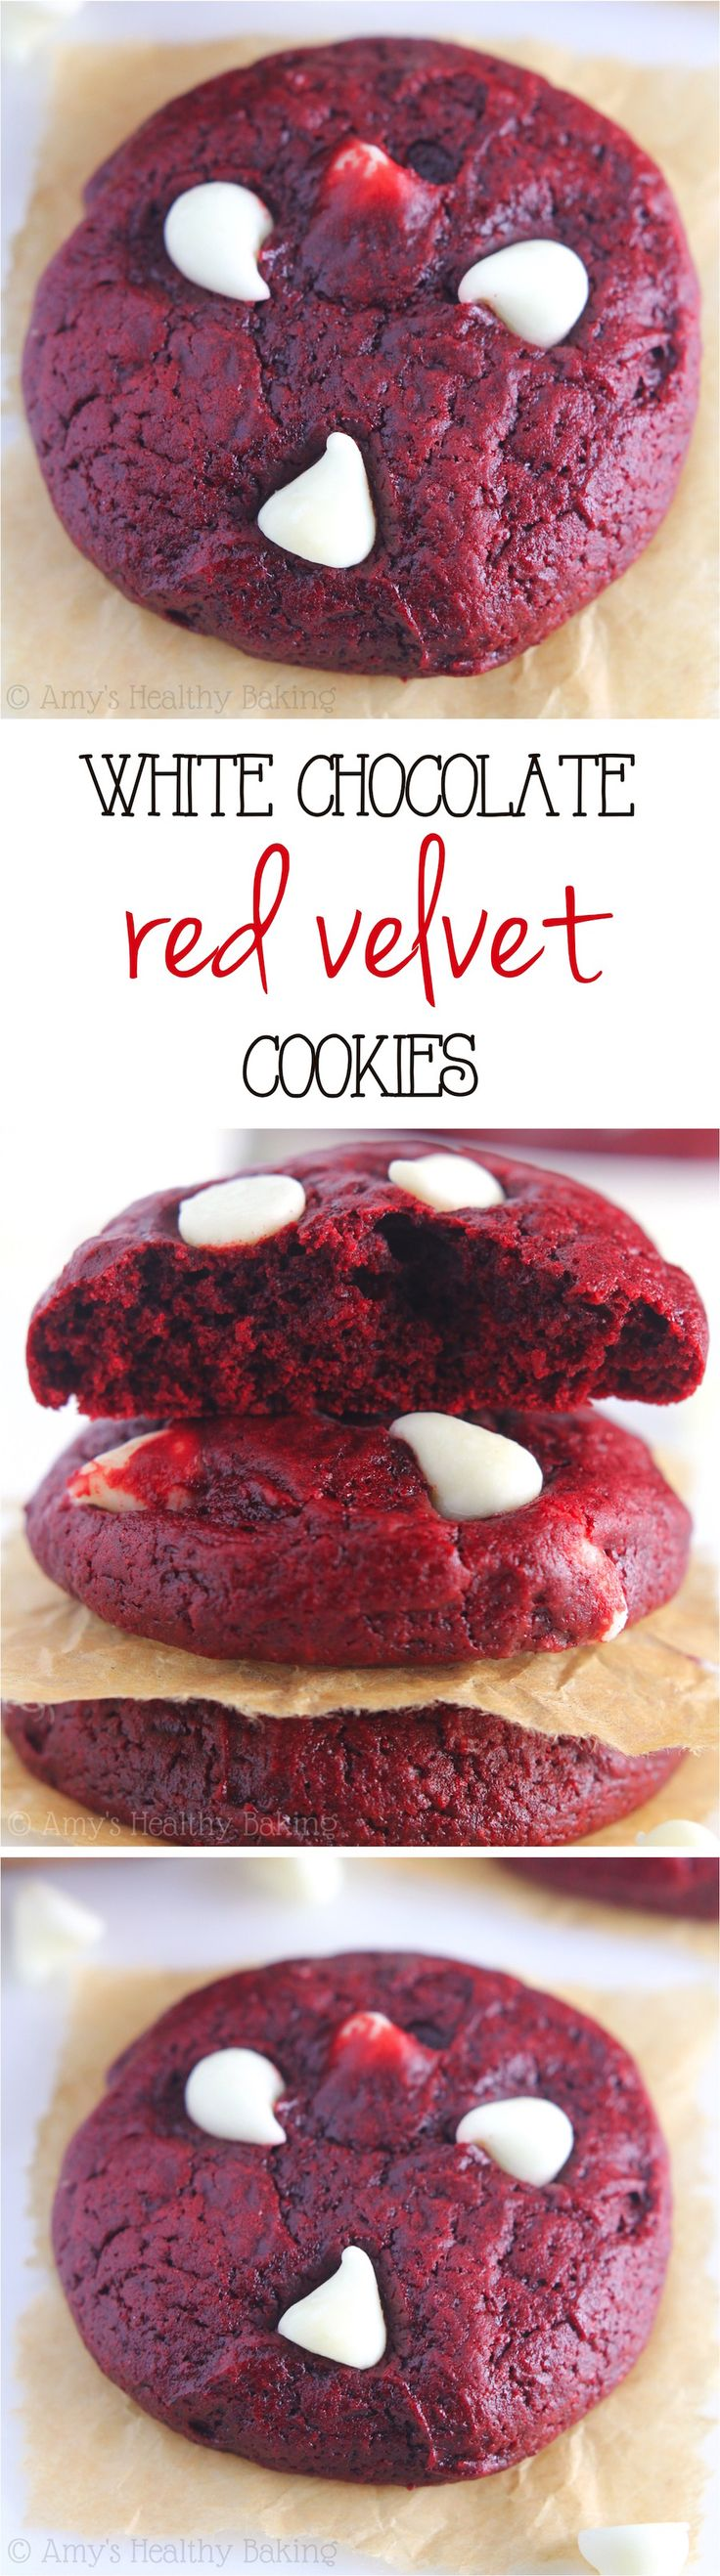 White Chocolate Red Velvet Cookies -- supremely soft, perfectly chocolaty & SO irresistible! We ate the entire batch in one night!